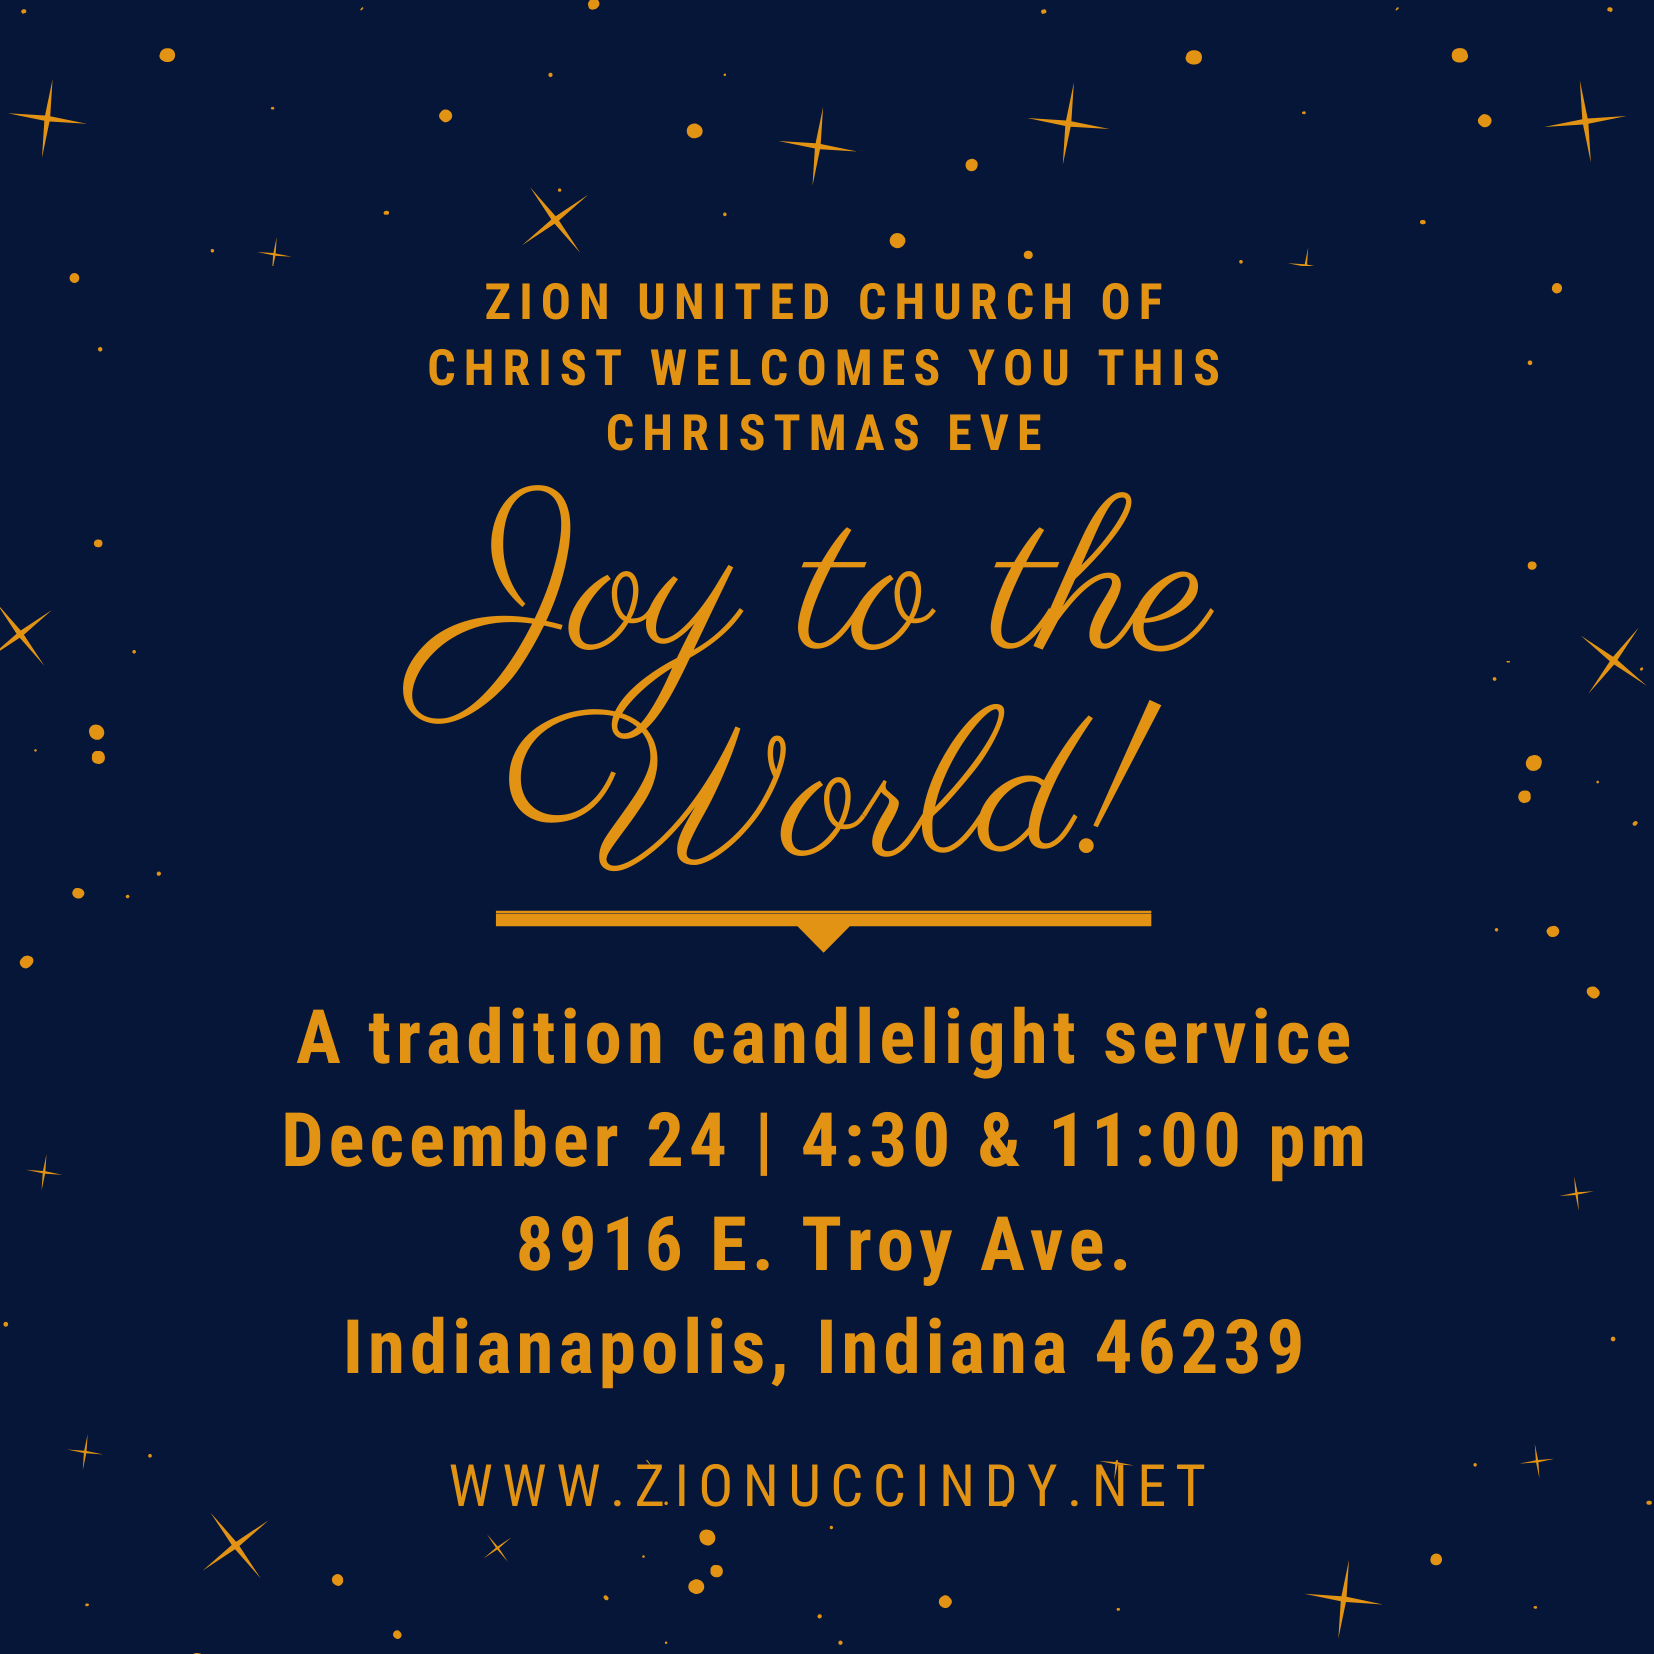 Joy to the World! (1)